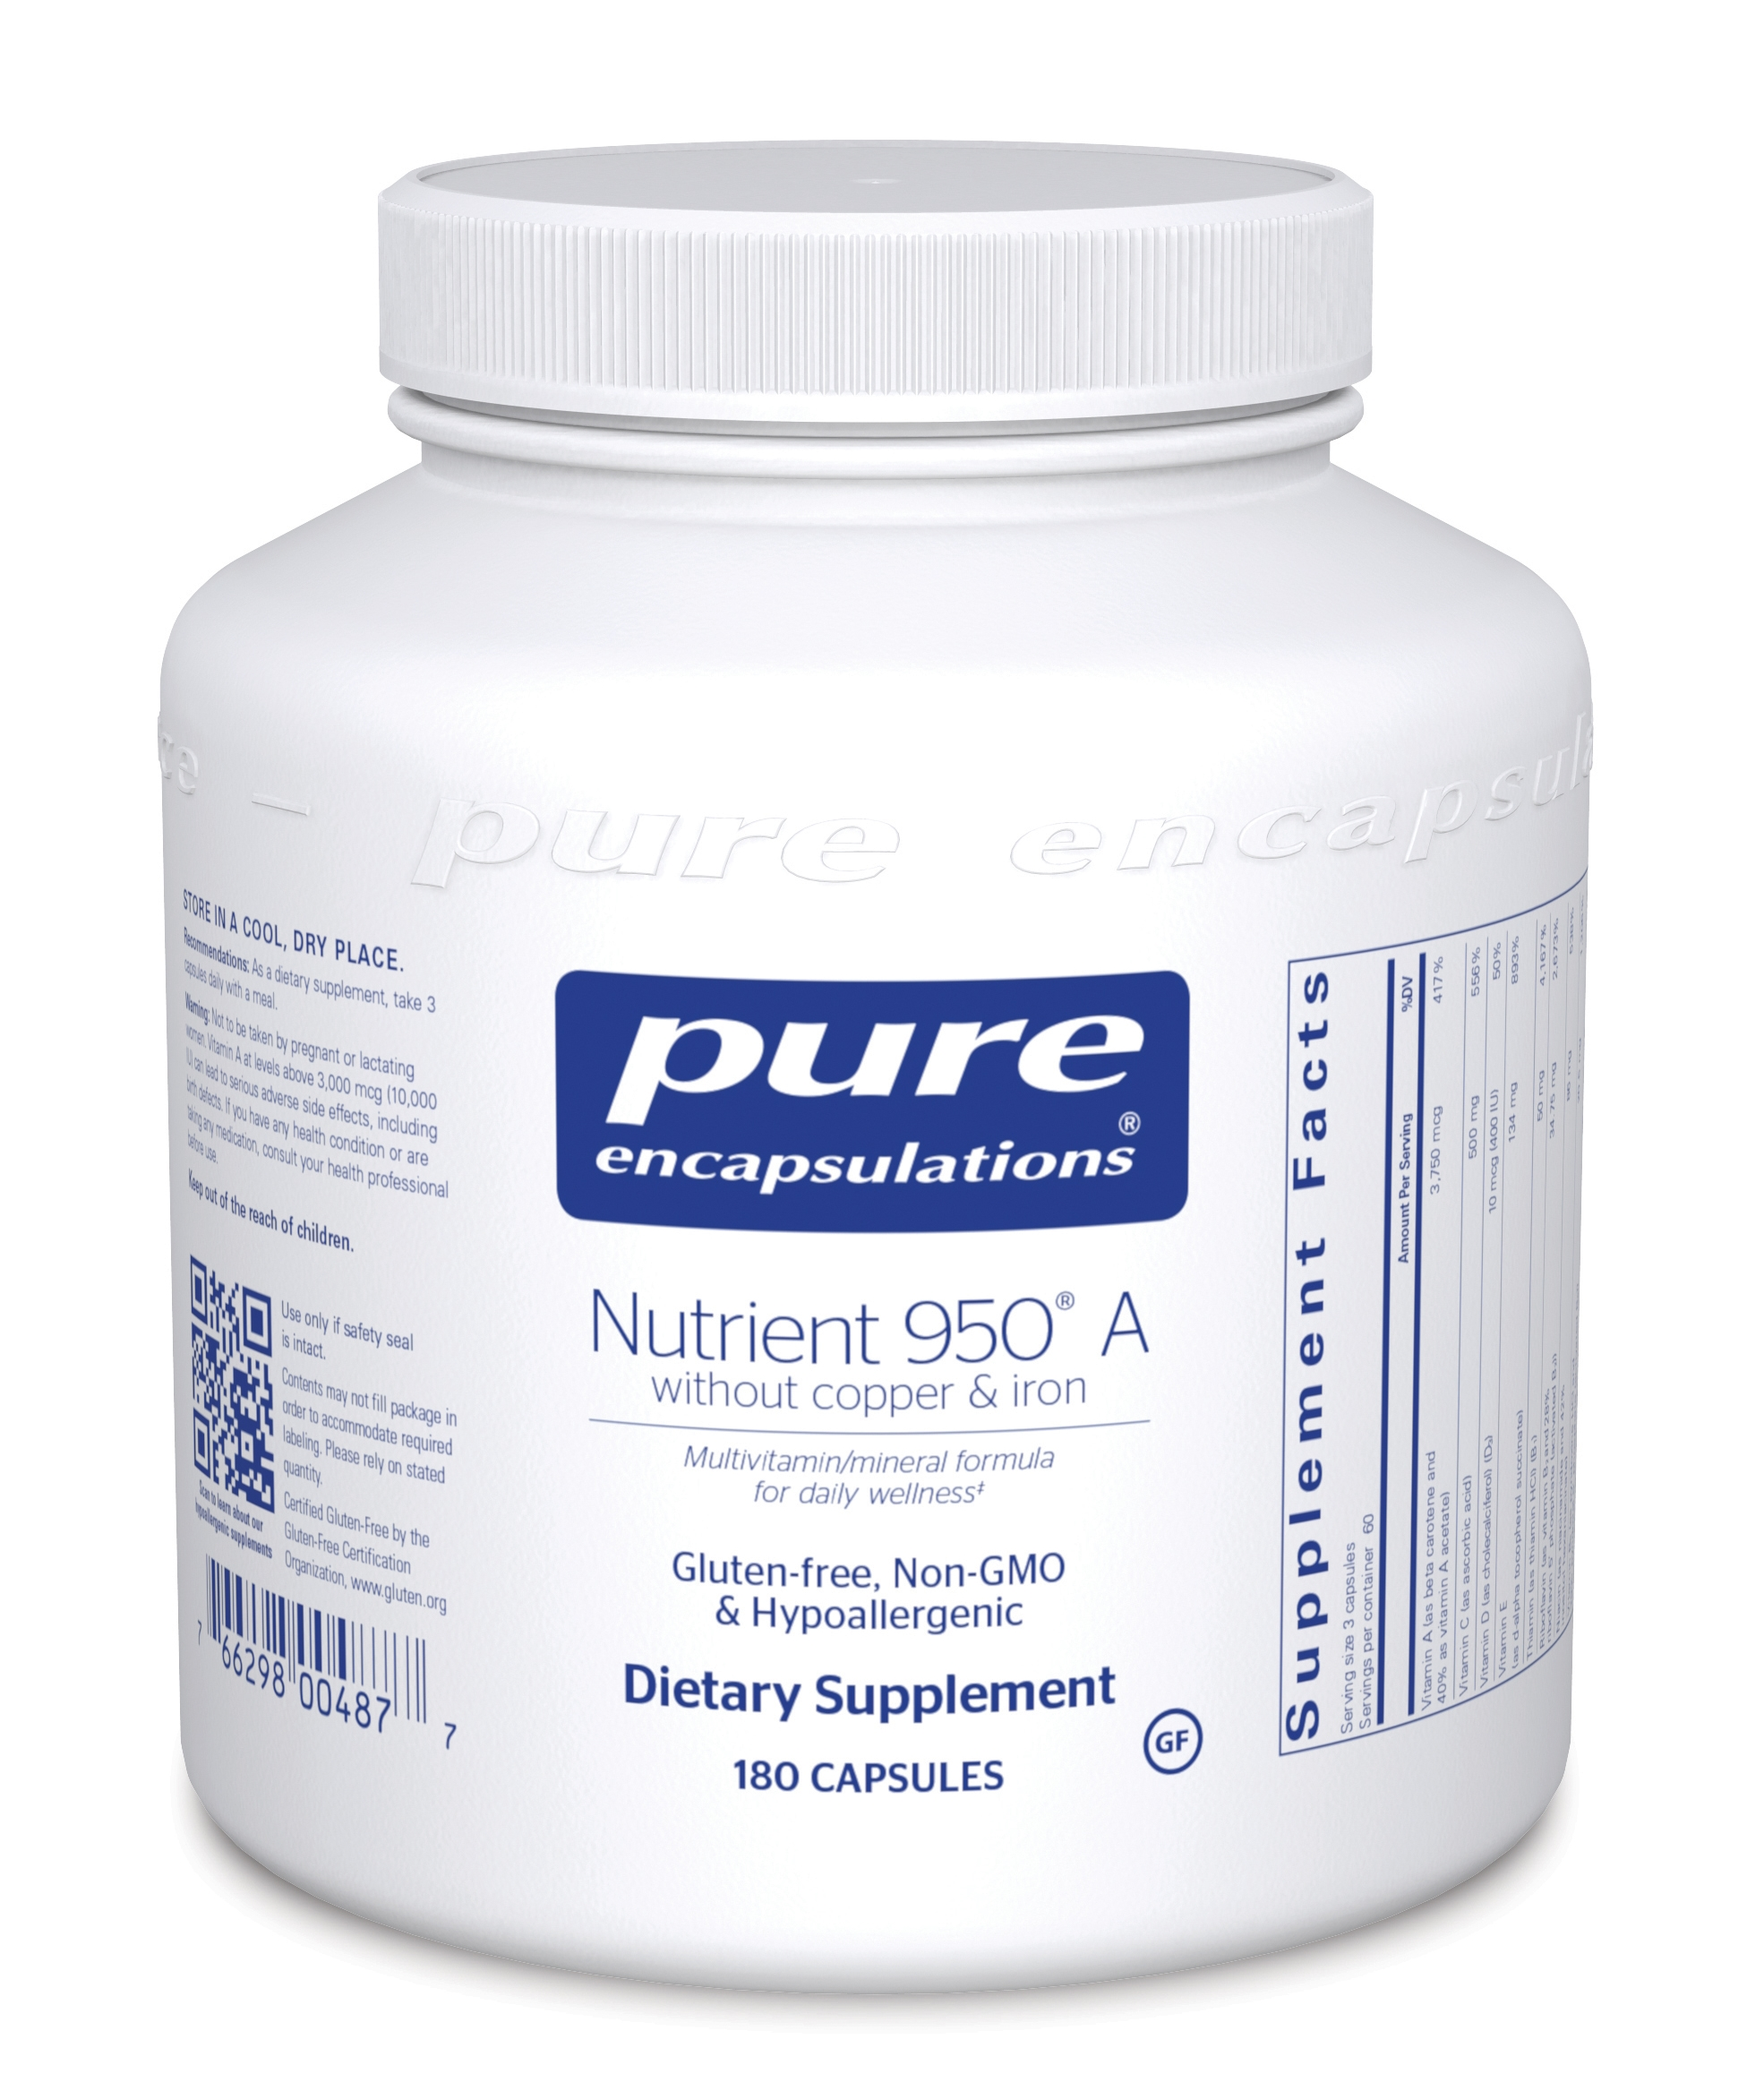 Pure Encapsulations Nutrient 950® without Copper & Iron